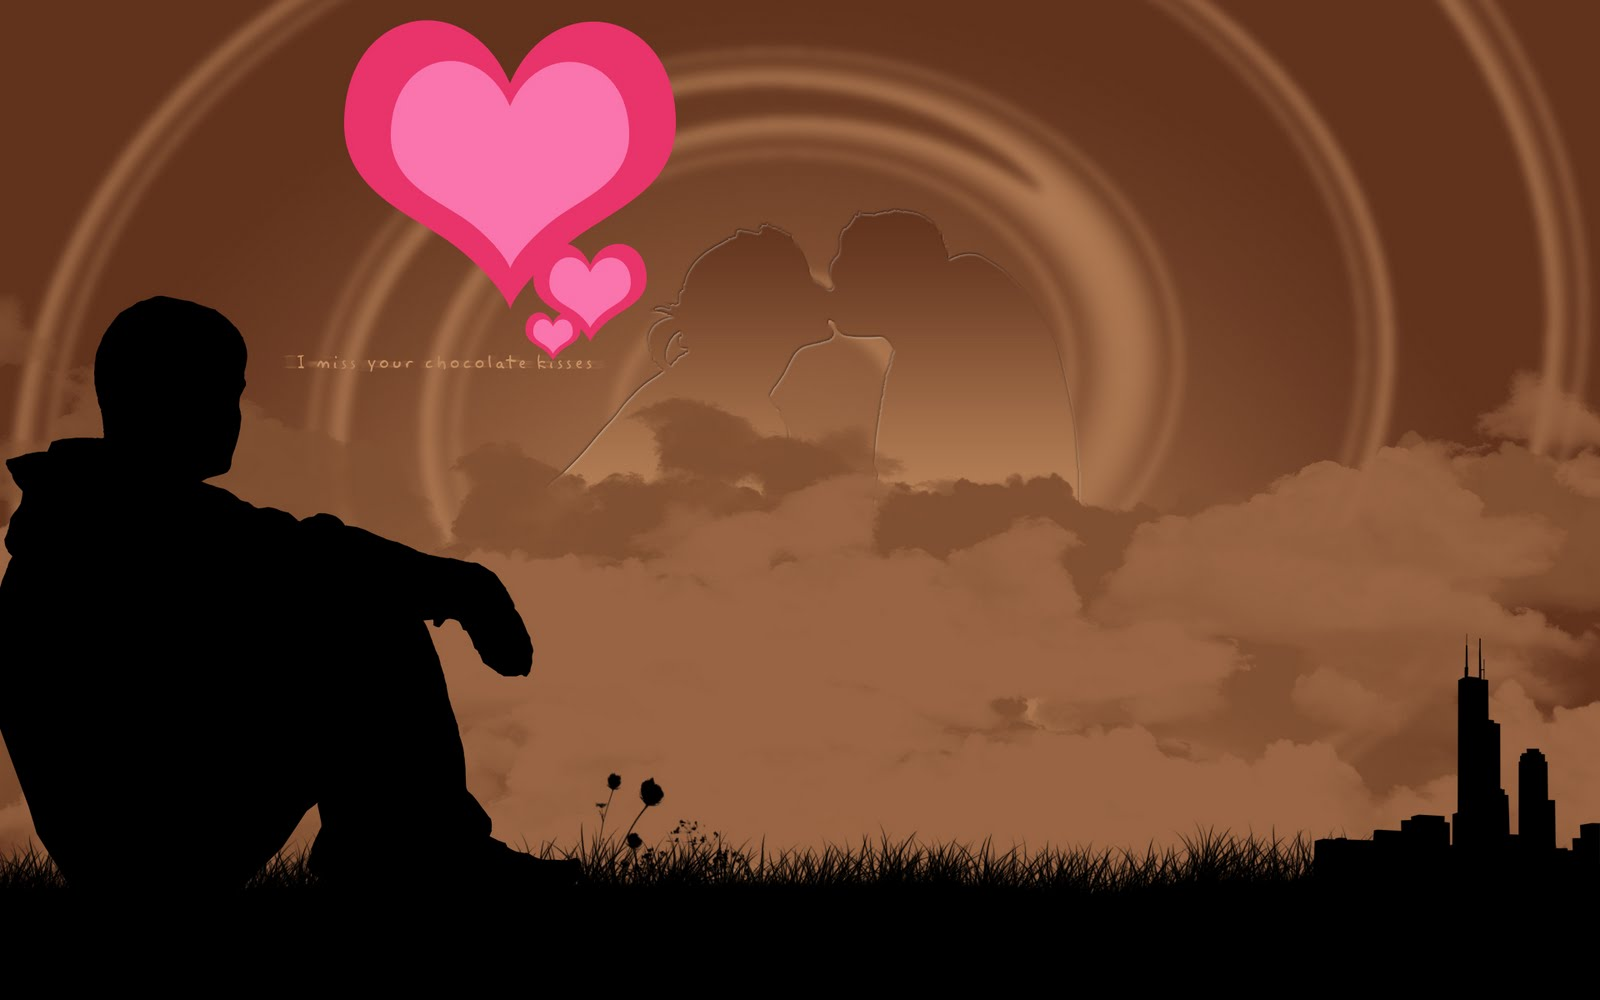 Love Wallpaper For Her : Love Pics For Her Wallpapers (50 Wallpapers) Adorable Wallpapers